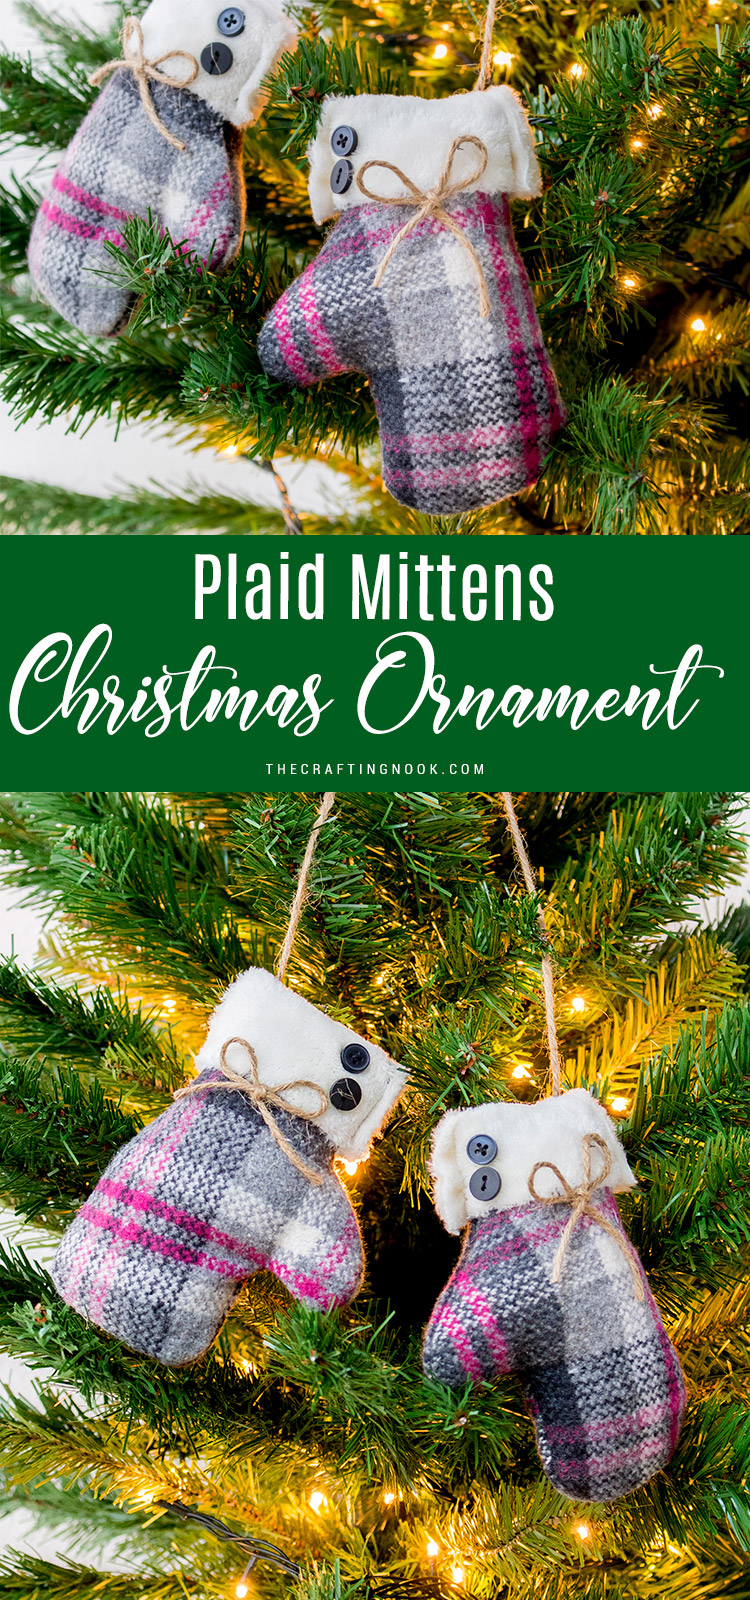 Mittens Christmas Ornament Tutorial